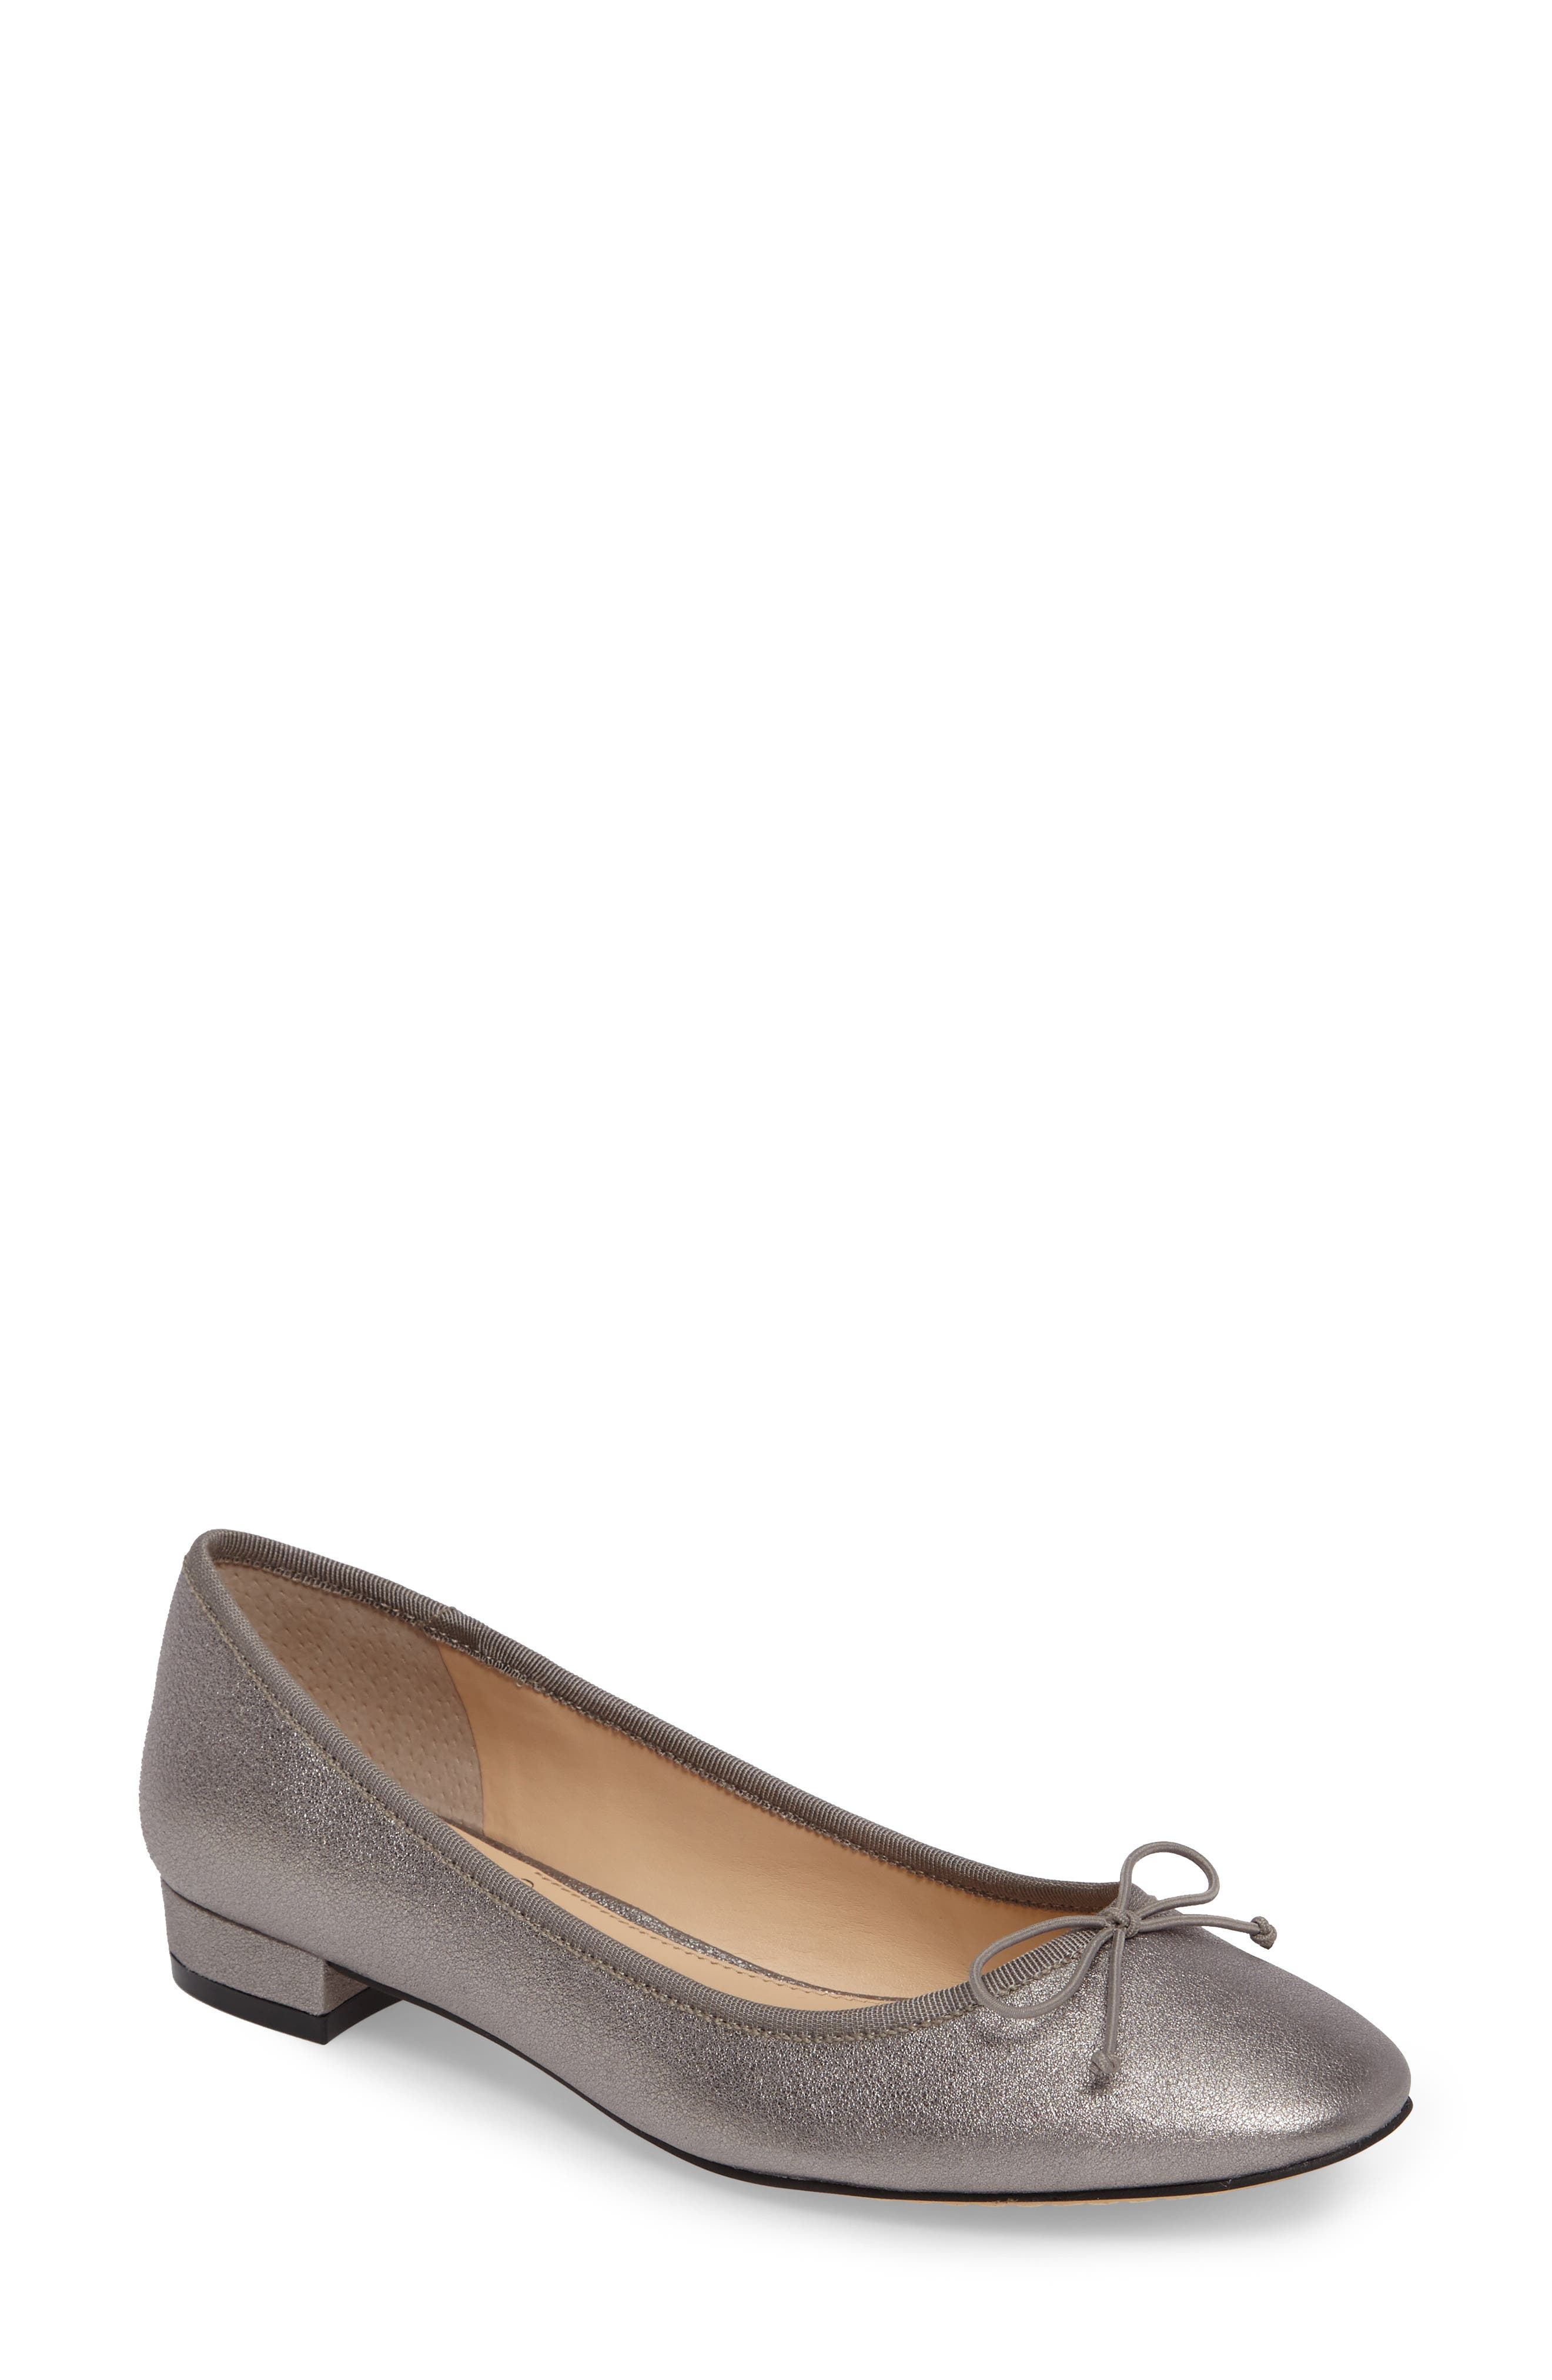 Alternate Image 1 Selected - Vince Camuto Adema Flat (Women)